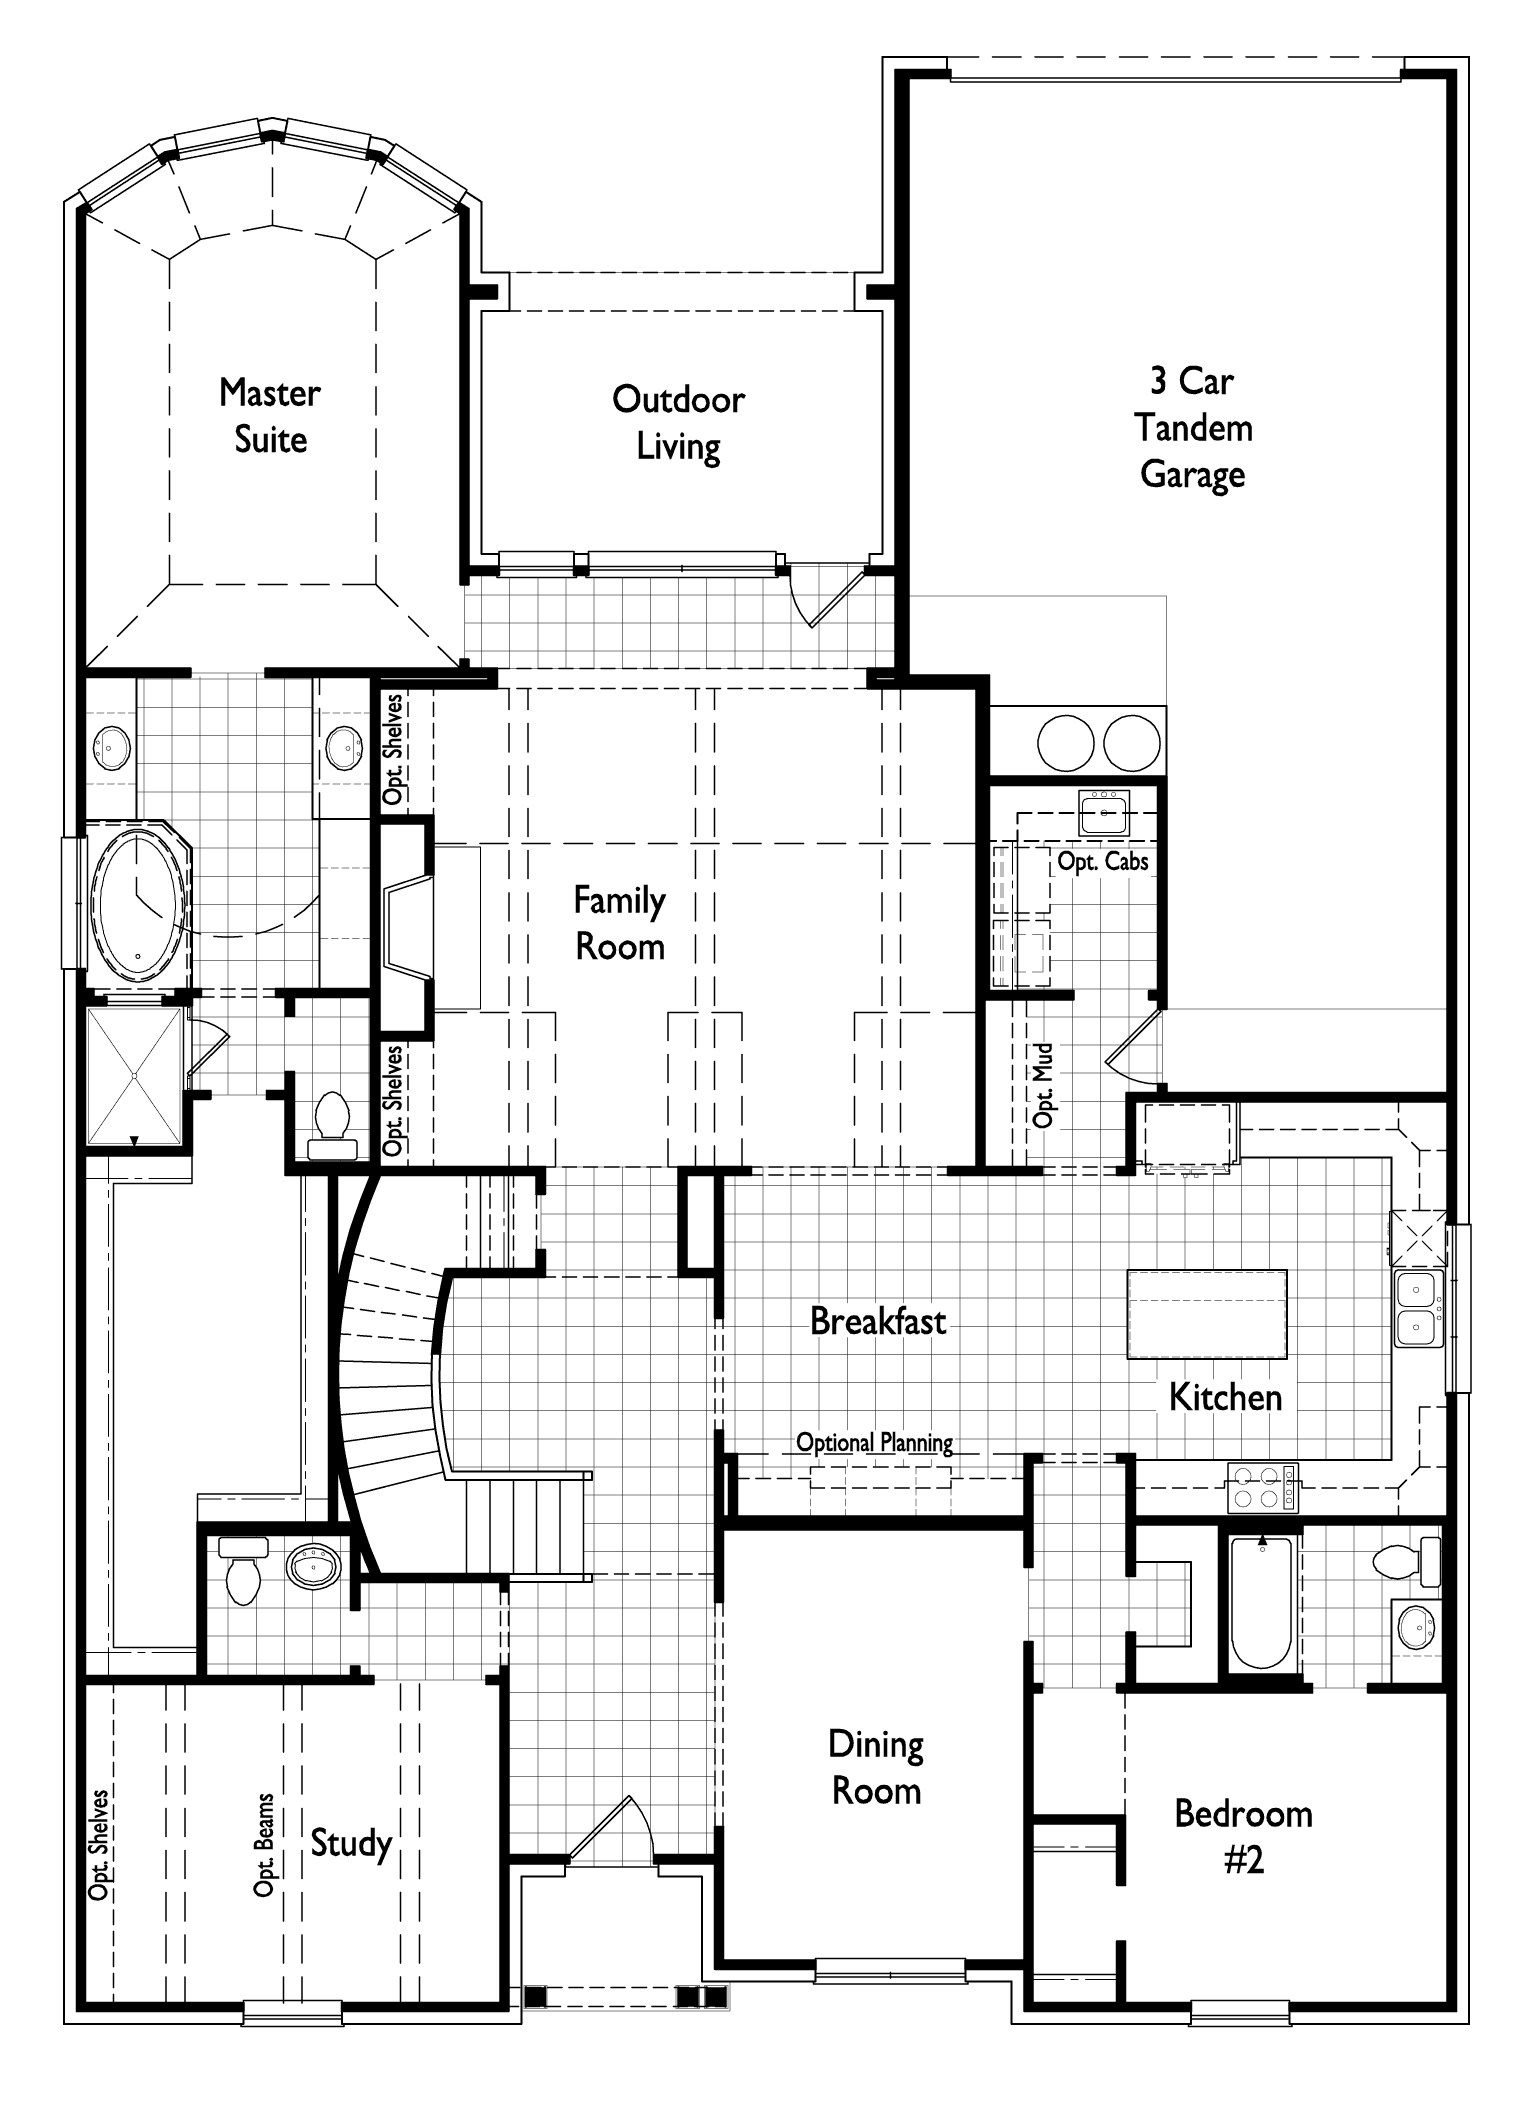 max1500_15075161 150507 highland homes, woodbridge north, plan 795 1329694, sachse, tx,Highland Homes Floor Plans Texas